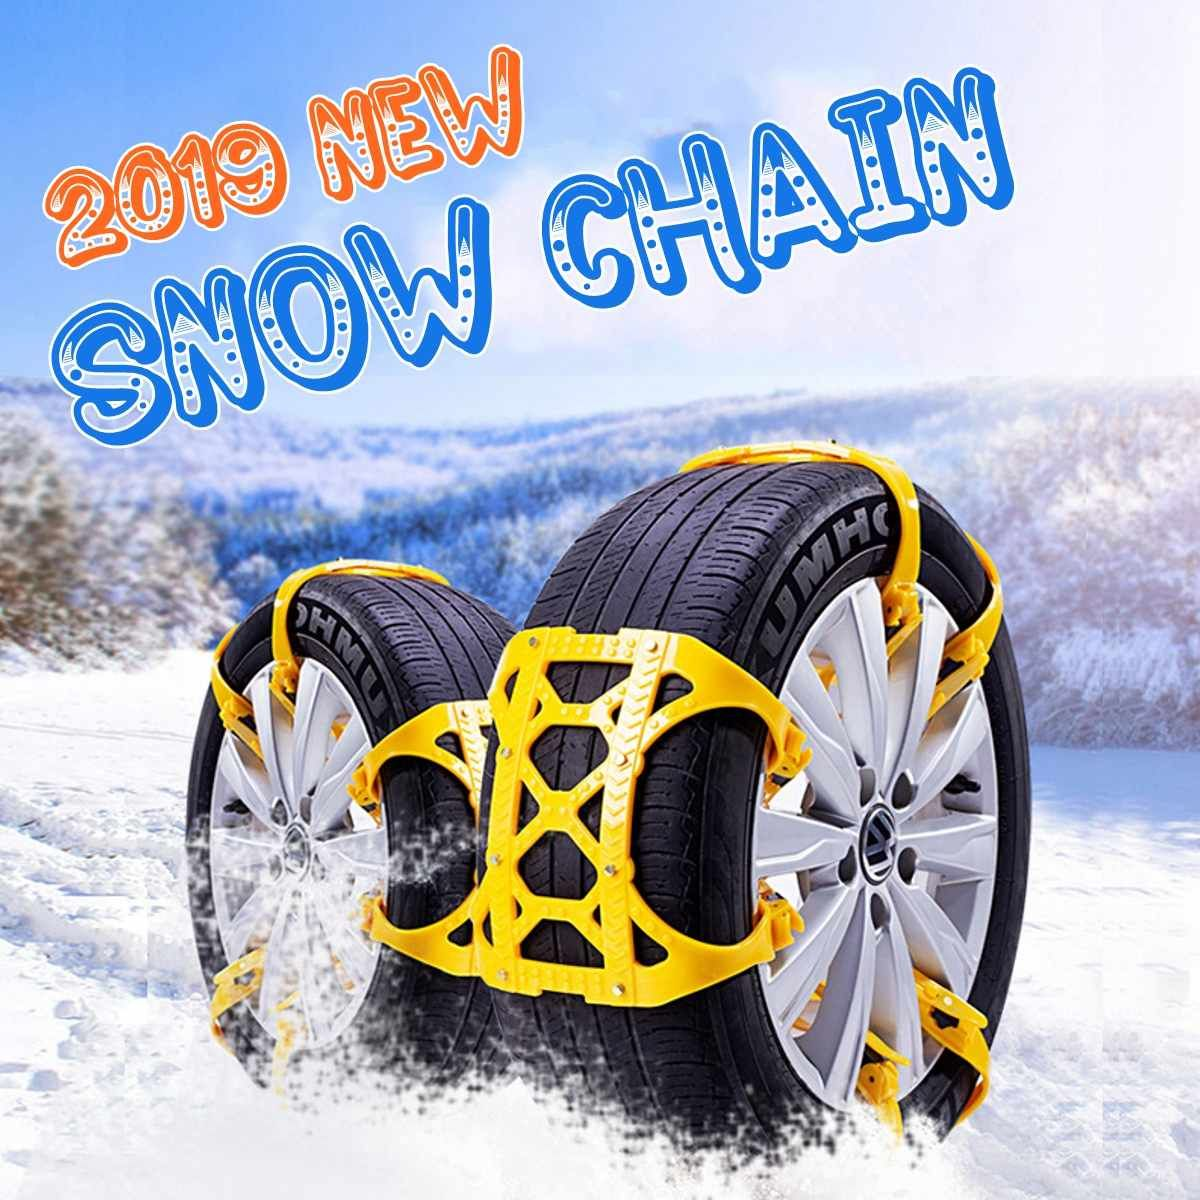 6pcs set Thicken General Automobile Tire Chain TPU Snow Chain Universal Car Suit For off-road SUV Safety Anti-slip Mud Snow Chai